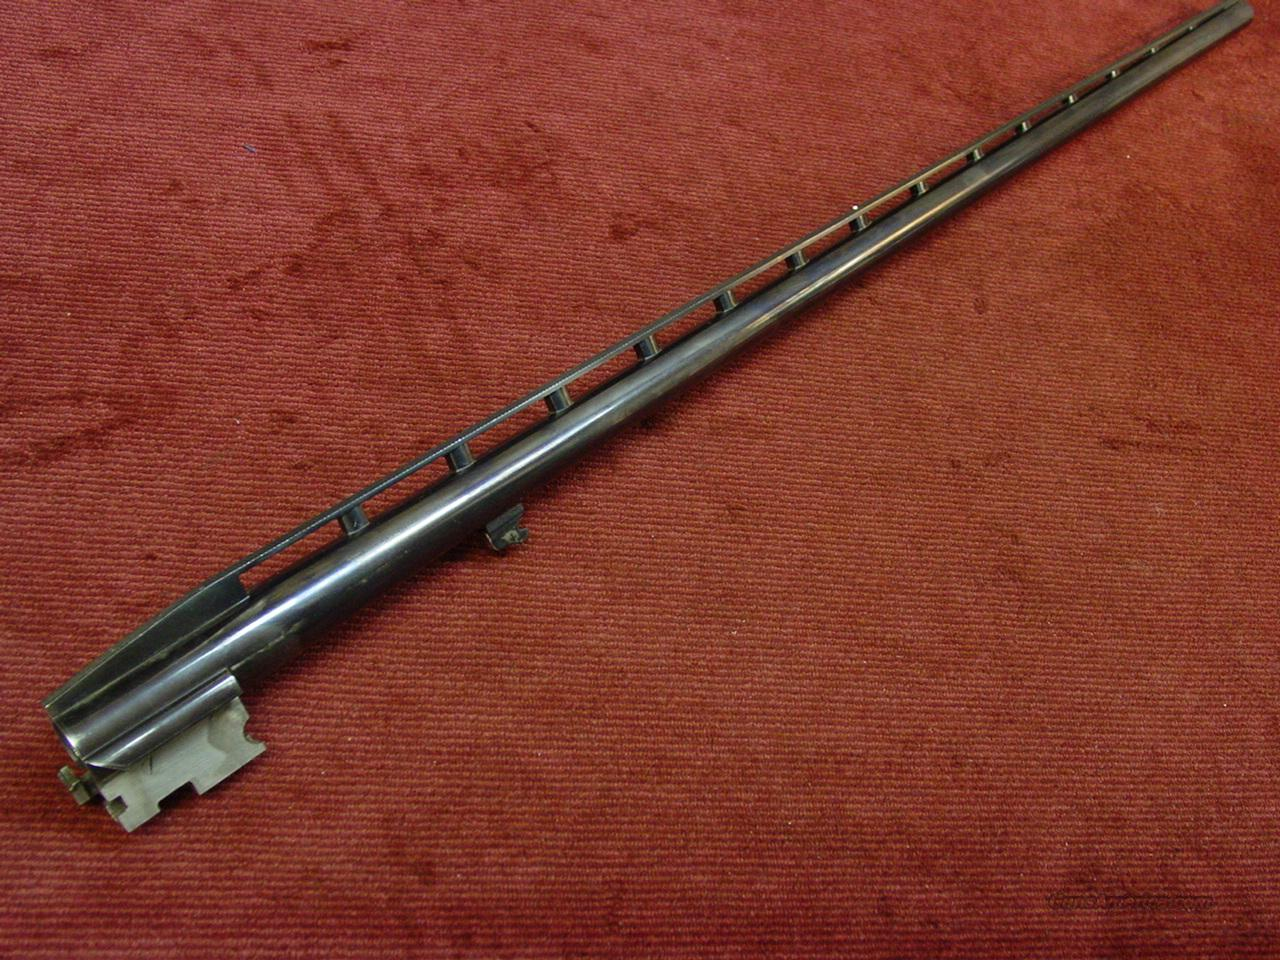 BT-99 12GA. 34-IN. FULL CHOKE TRAP BARREL  Guns > Shotguns > Browning Shotguns > Single Barrel